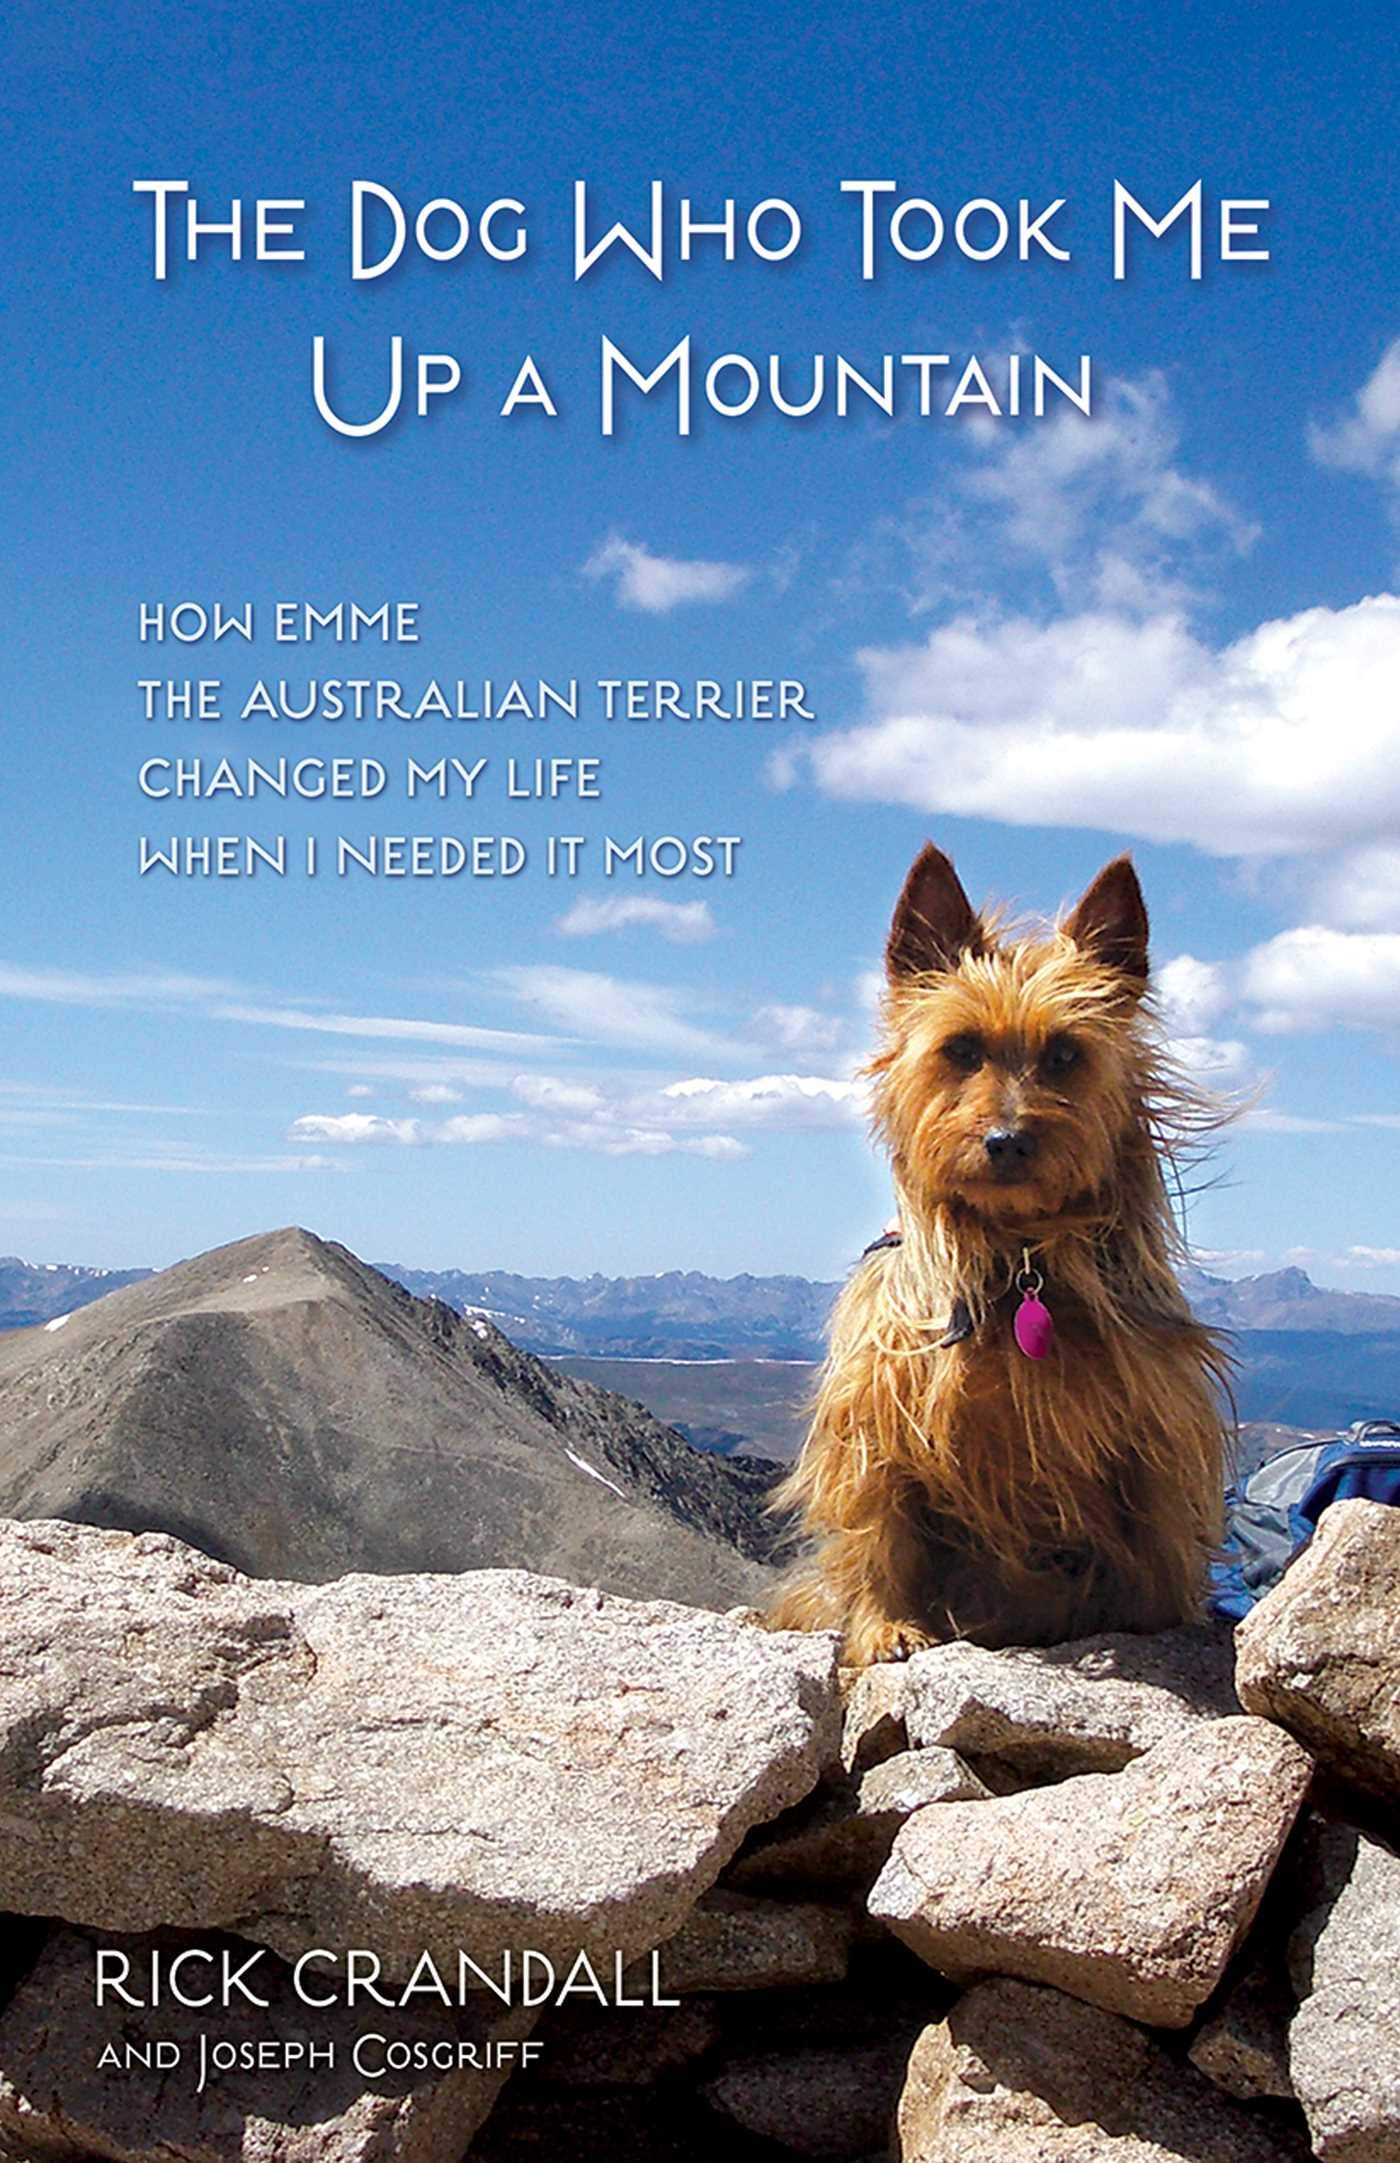 The Dog Who Took Me Up a Mountain: How Emme the Australian Terrier Changed My Life When I Needed It Most by Health Communications Inc